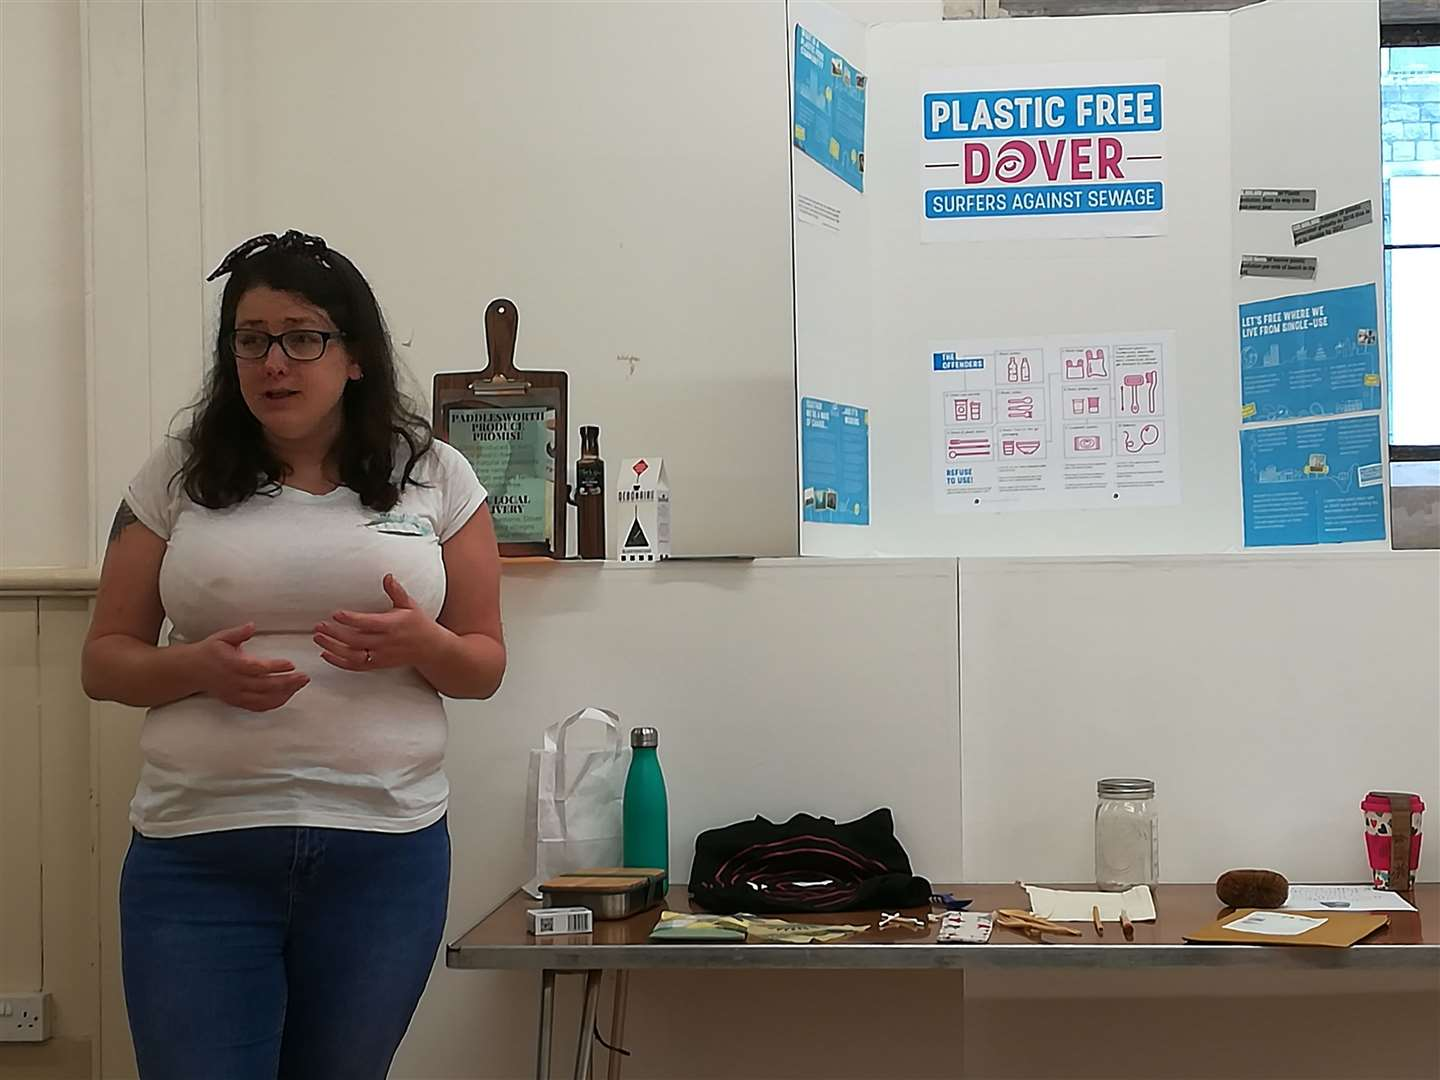 Amy Howie talks about the benefits of going plastic free